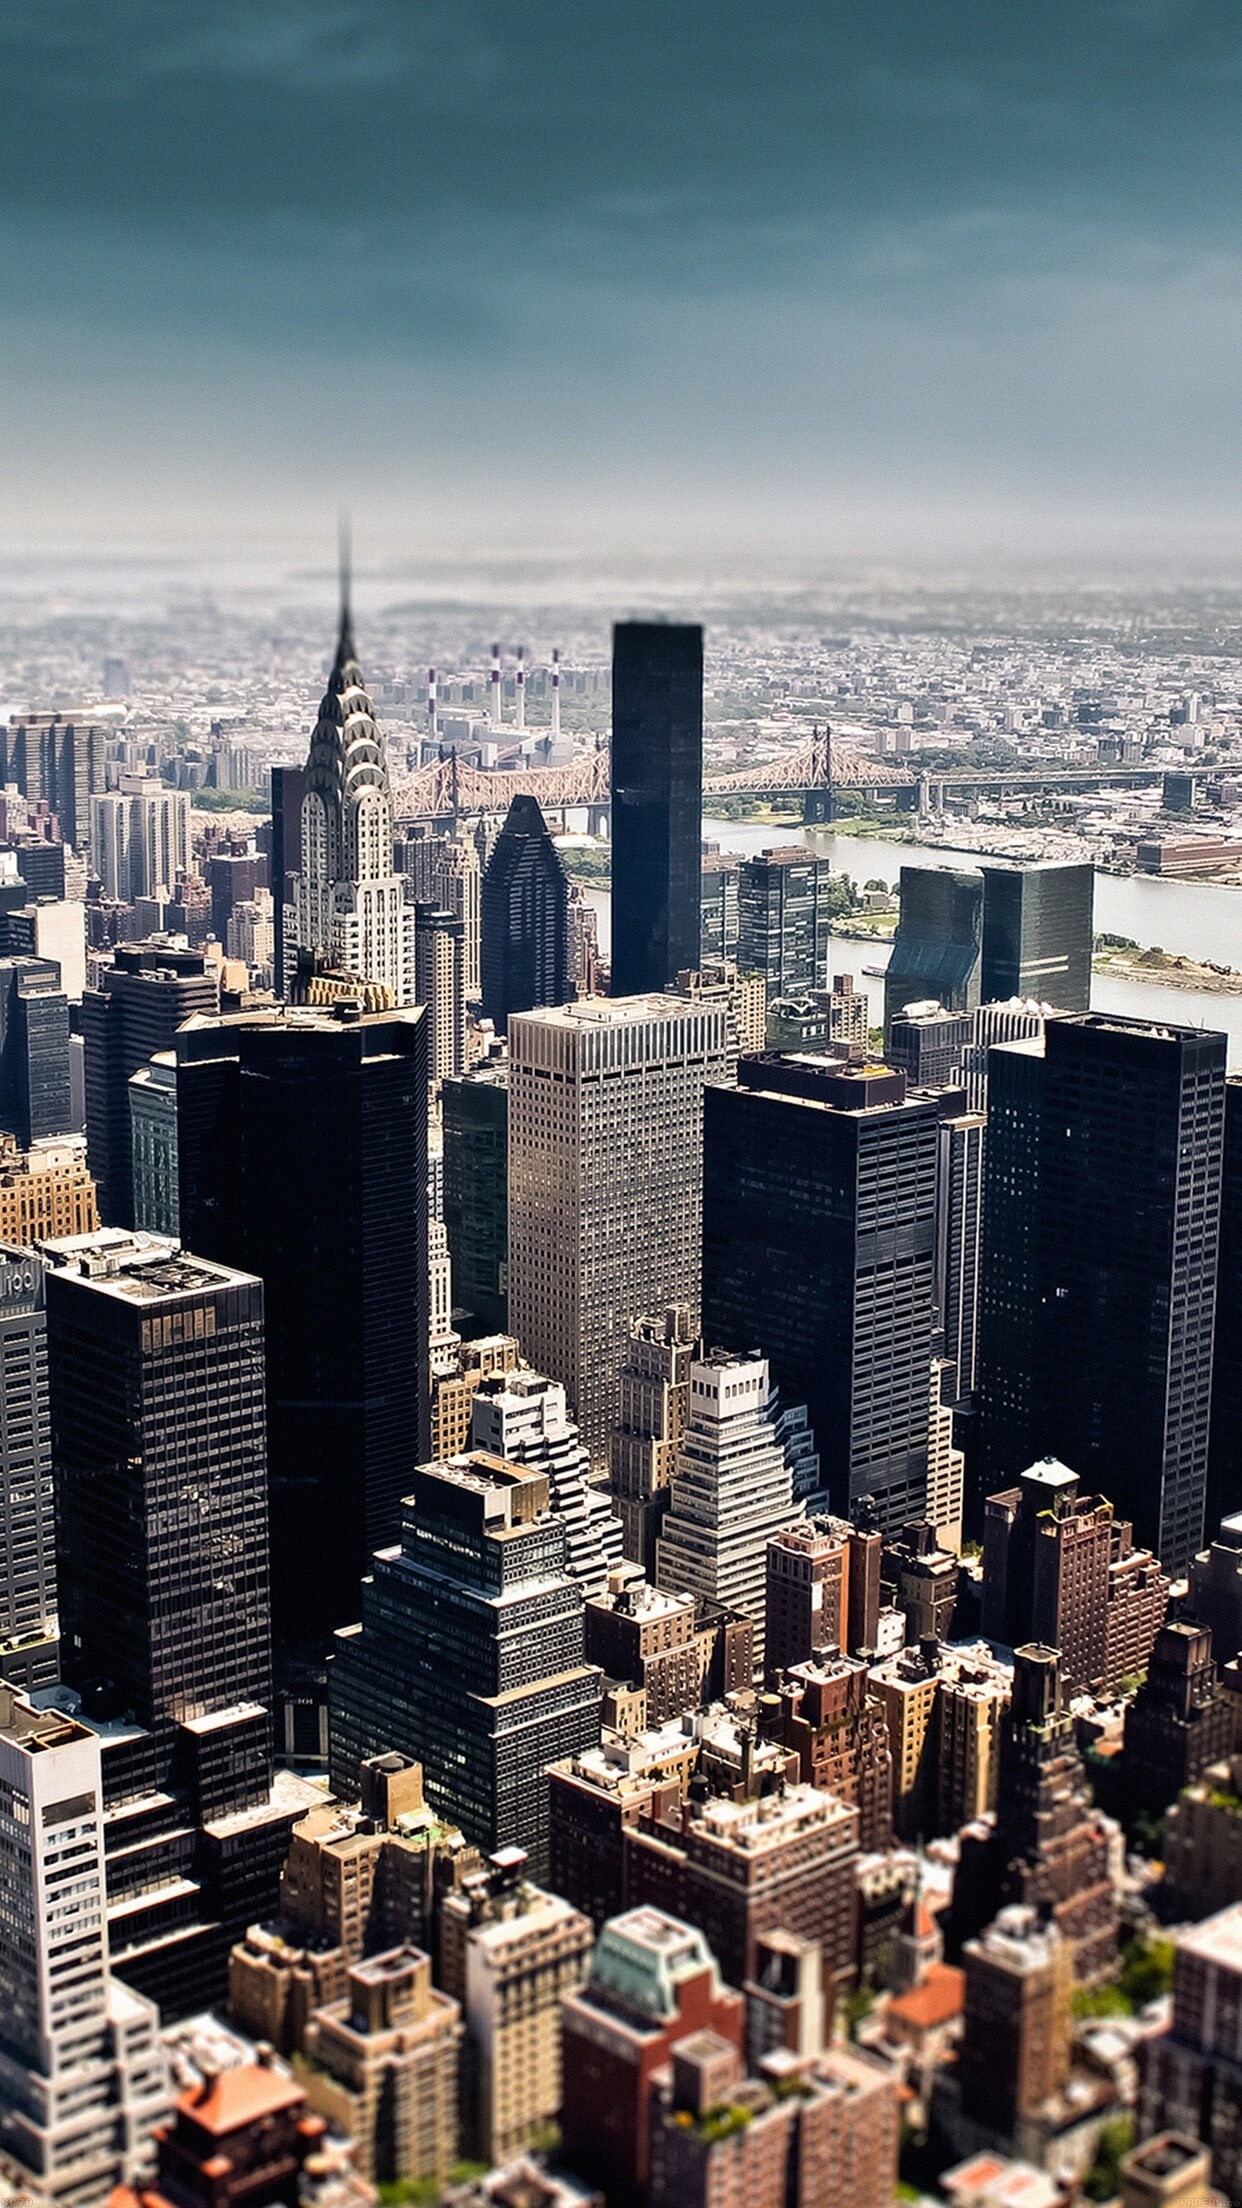 How to download New York City iPhone Wallpaper HD:-